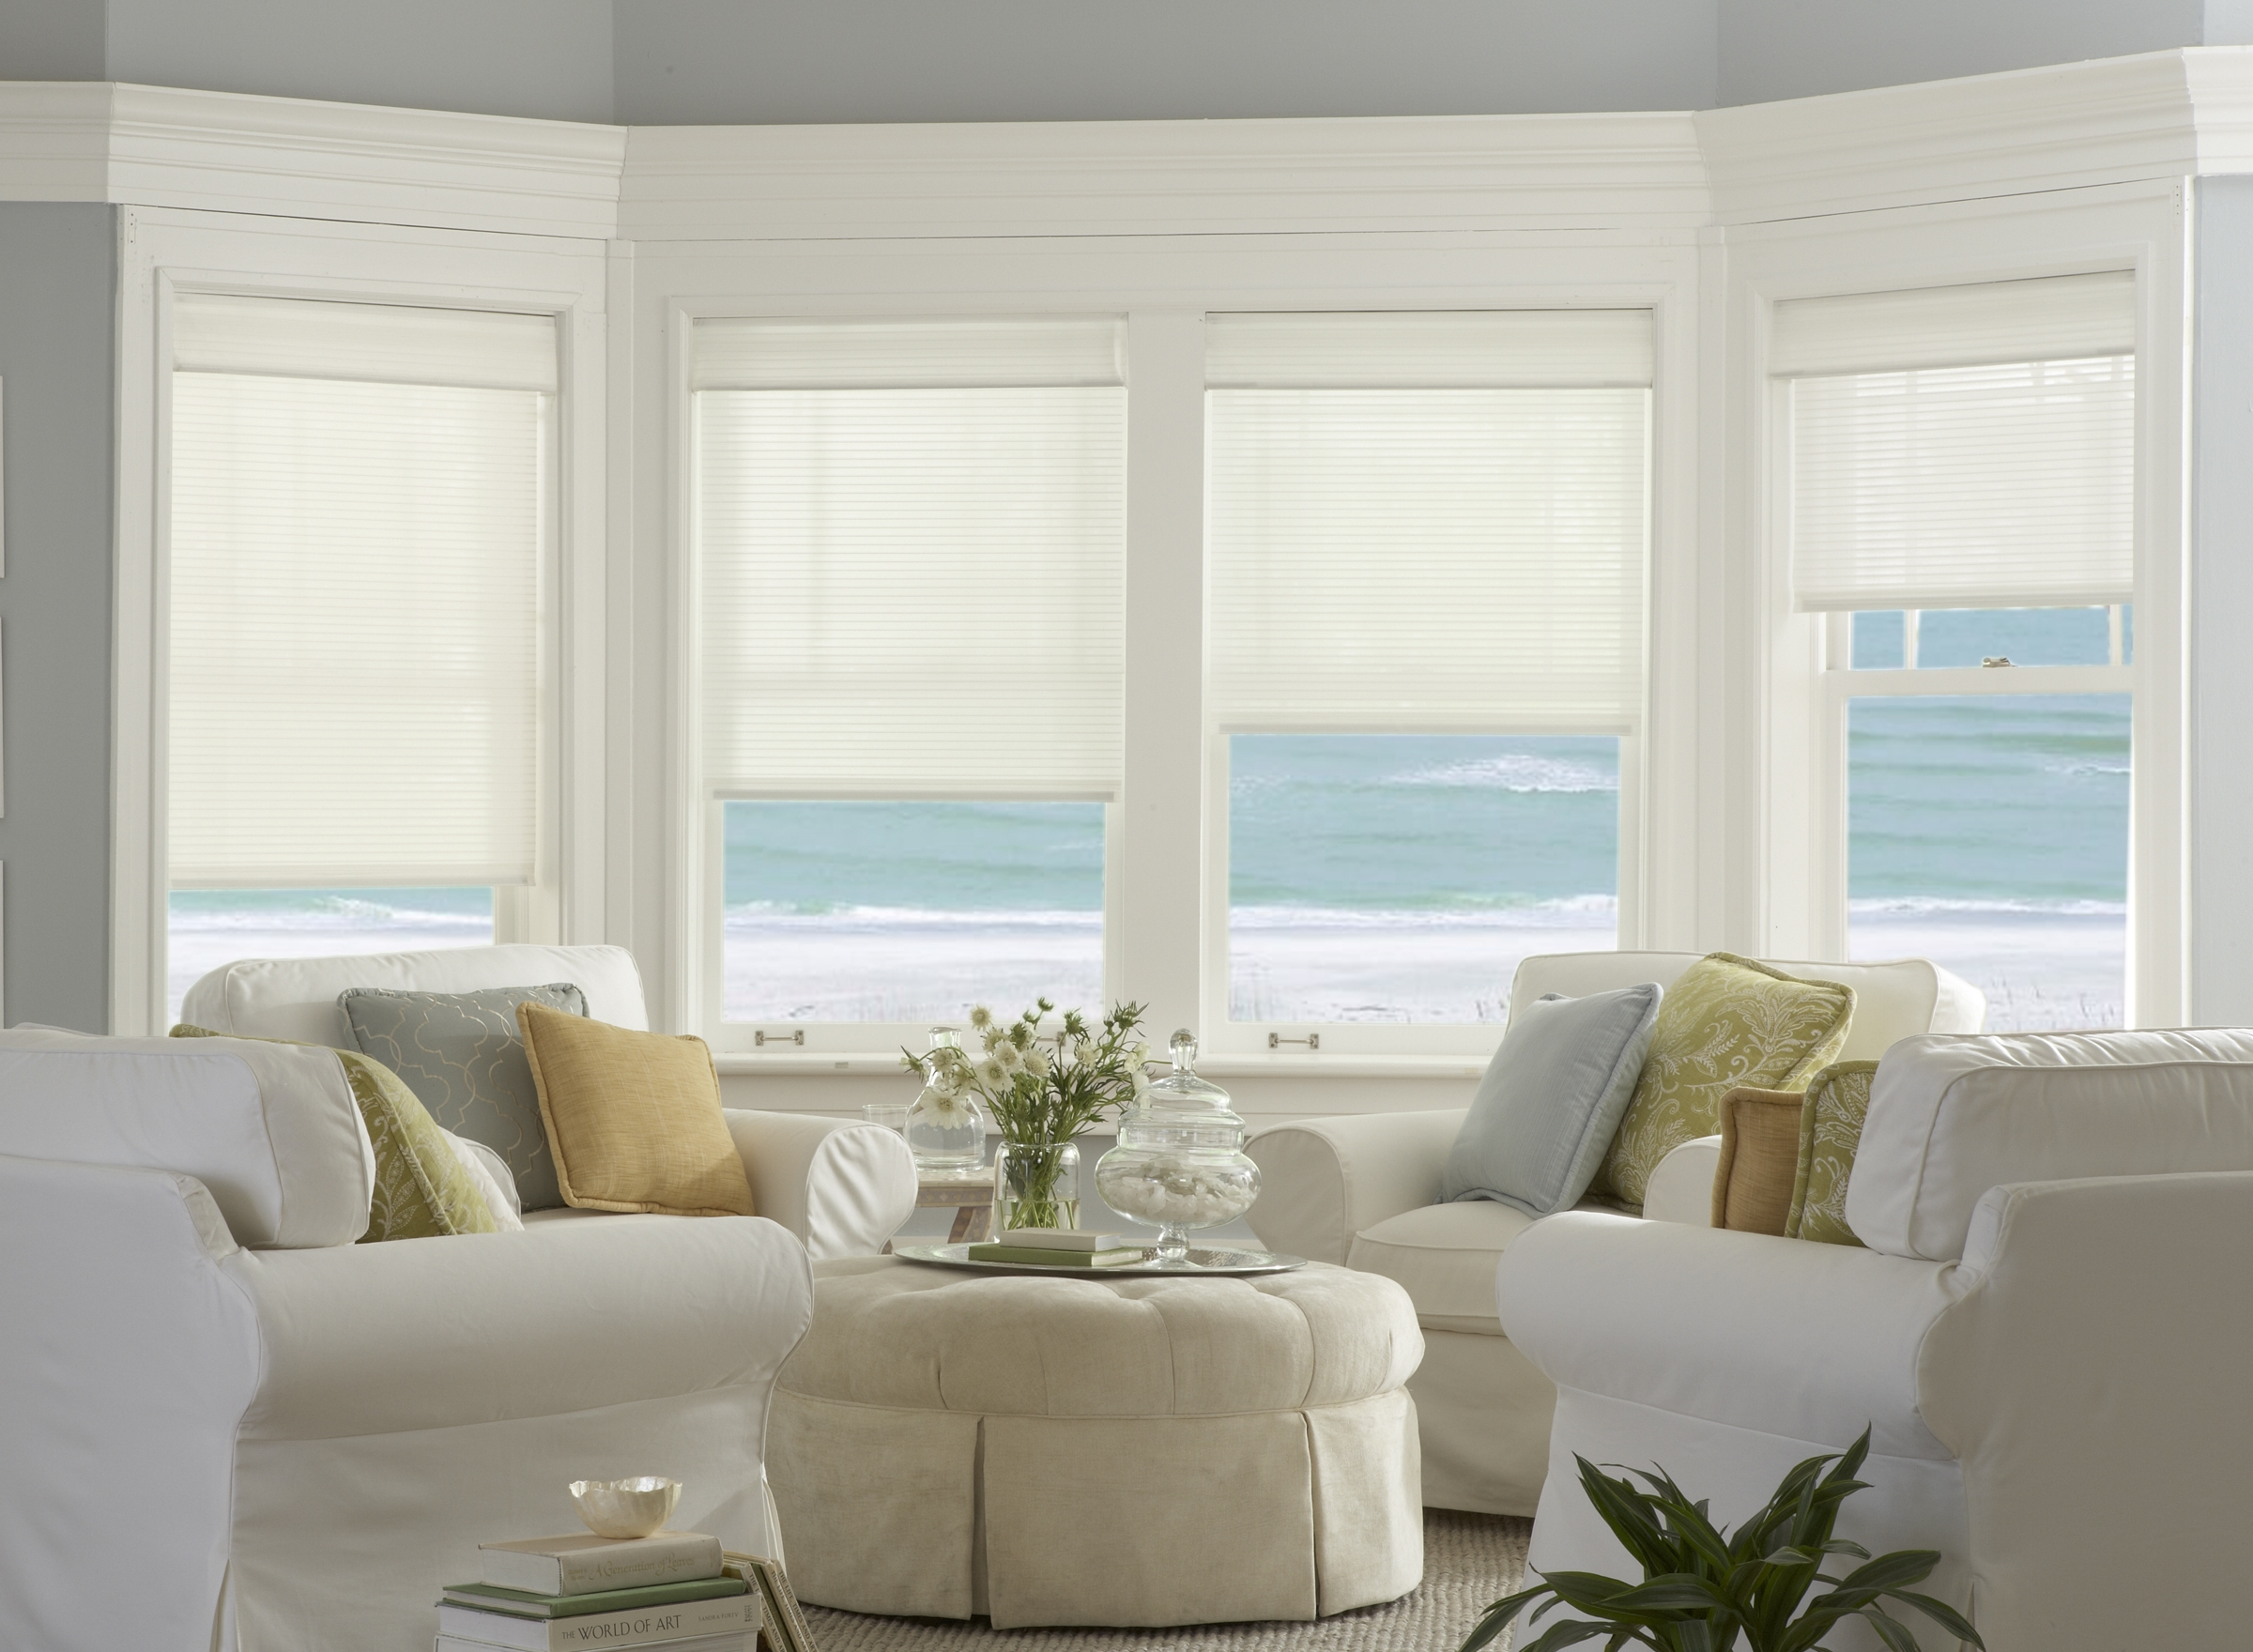 Add elegance and privacy without obstructing a beautiful view. Photo courtesy of Horizons Window Fashions